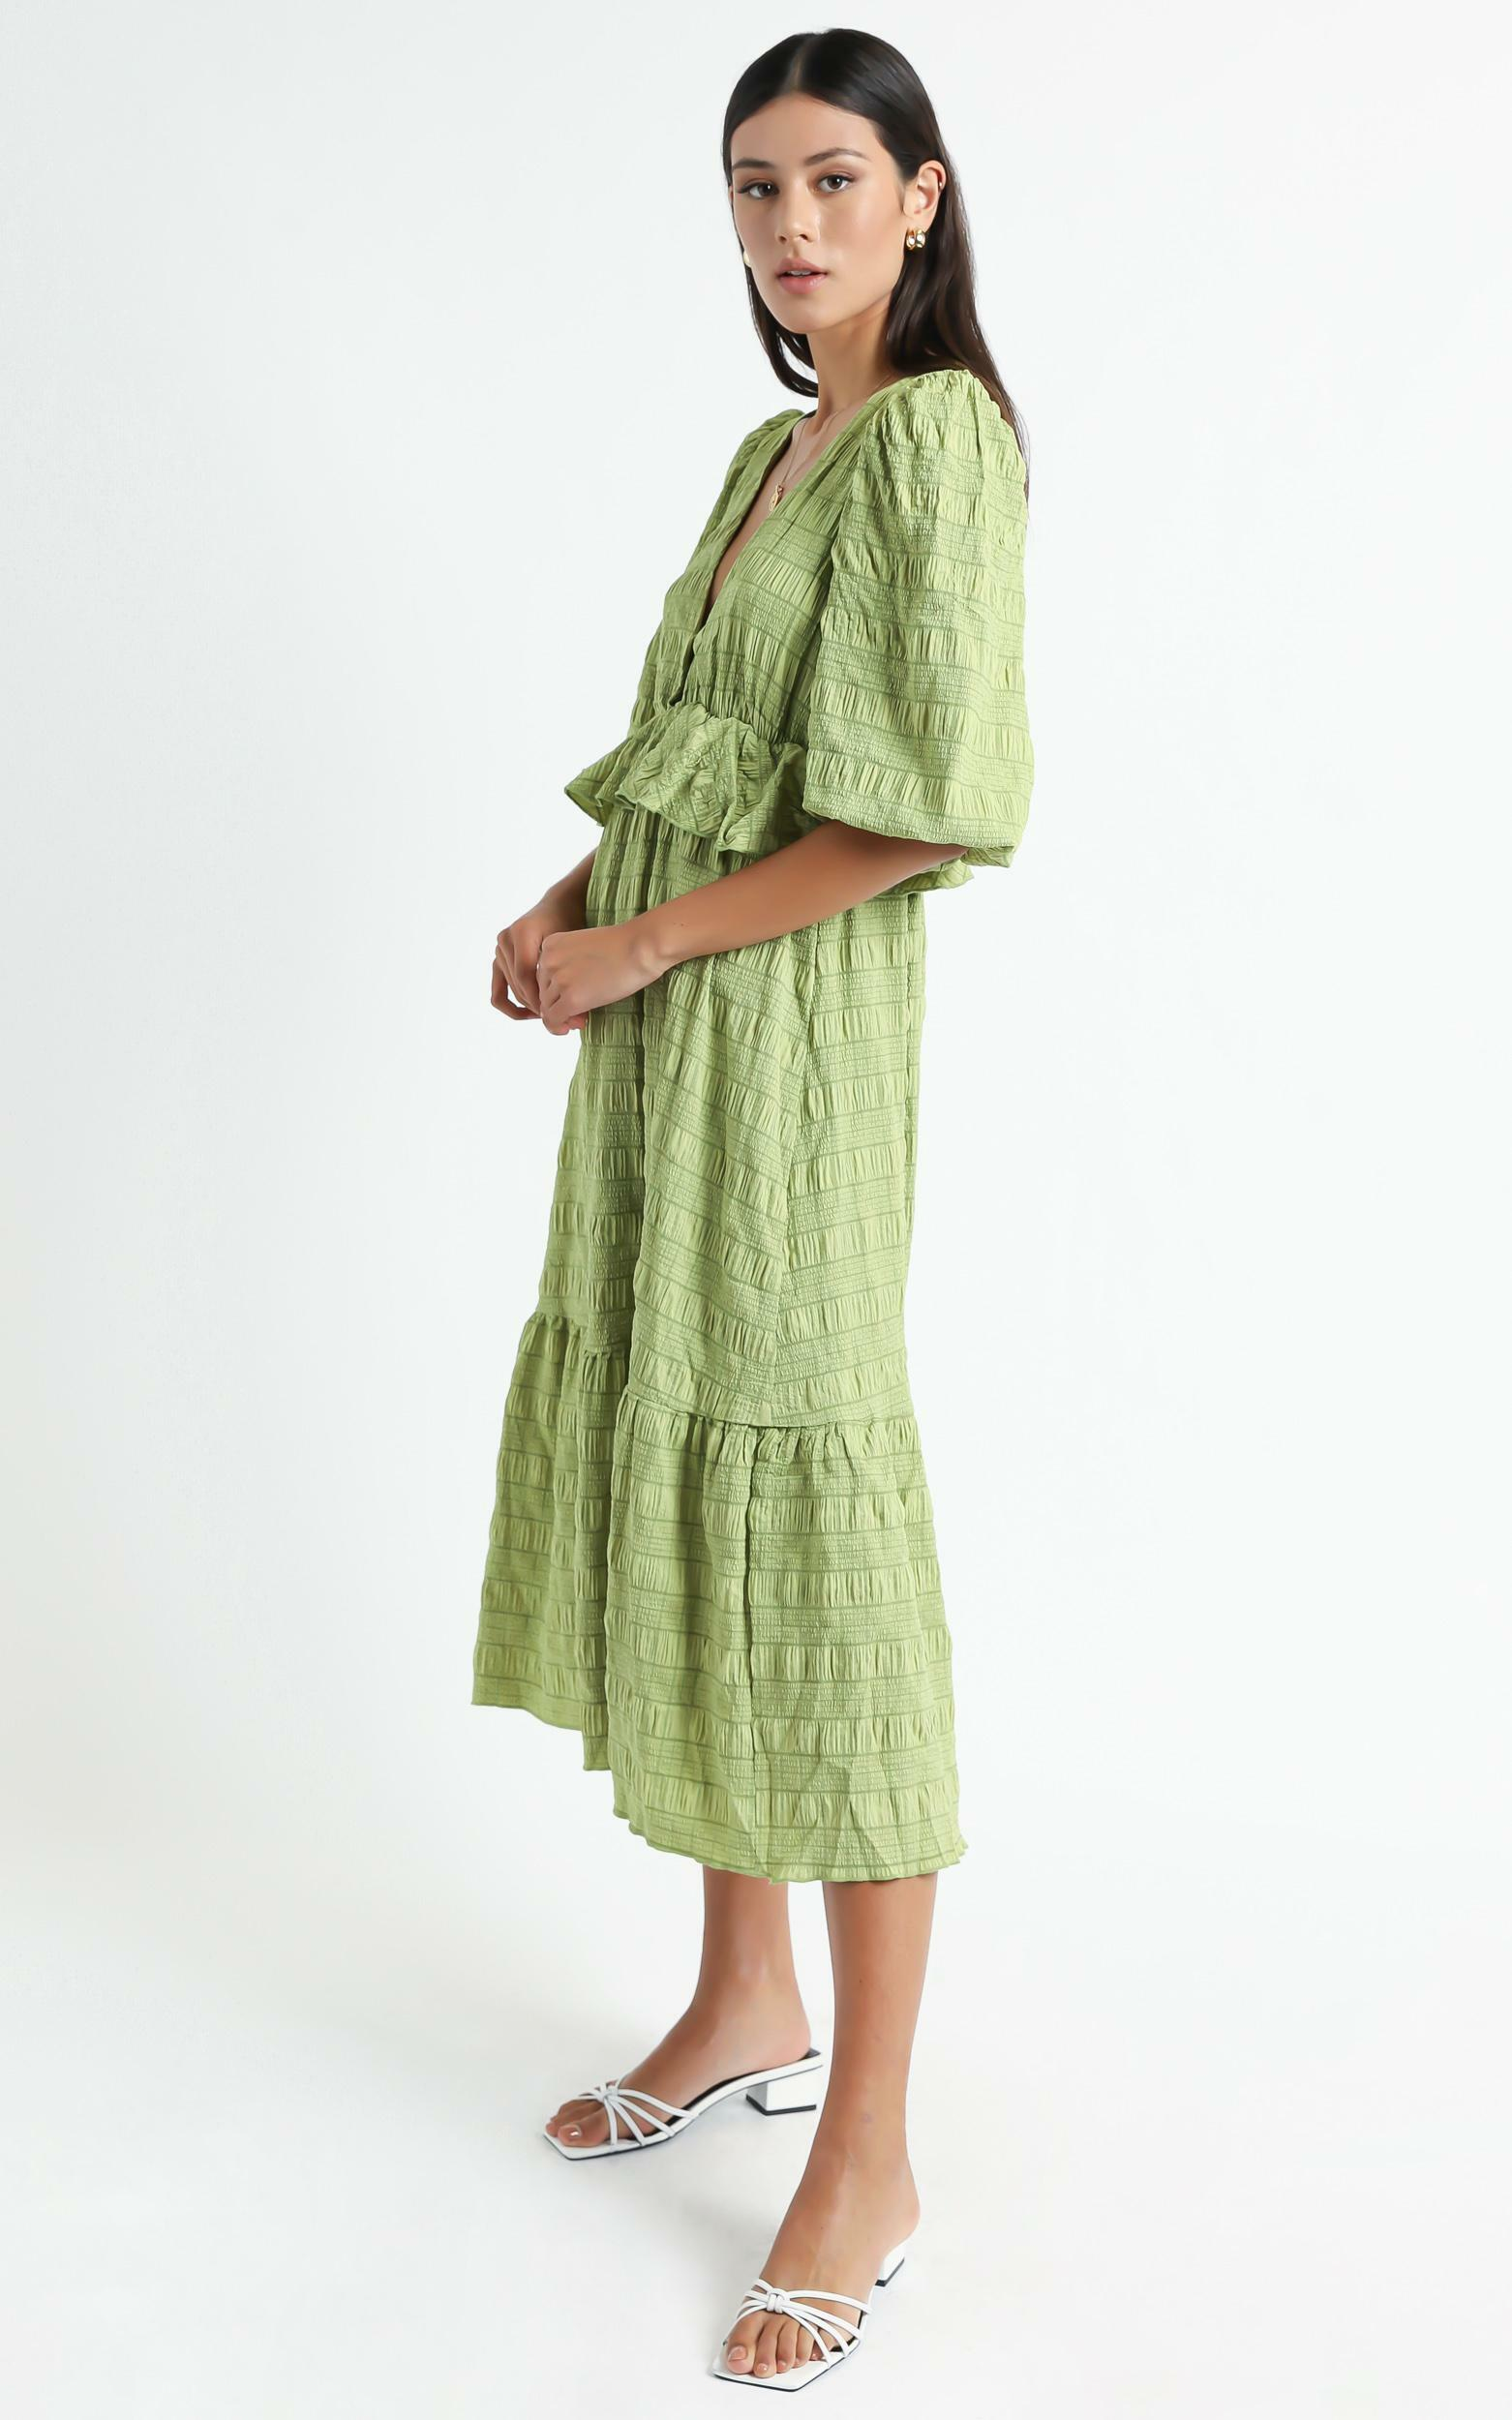 Addilyn Dress in Green Check - 06, GRN2, hi-res image number null